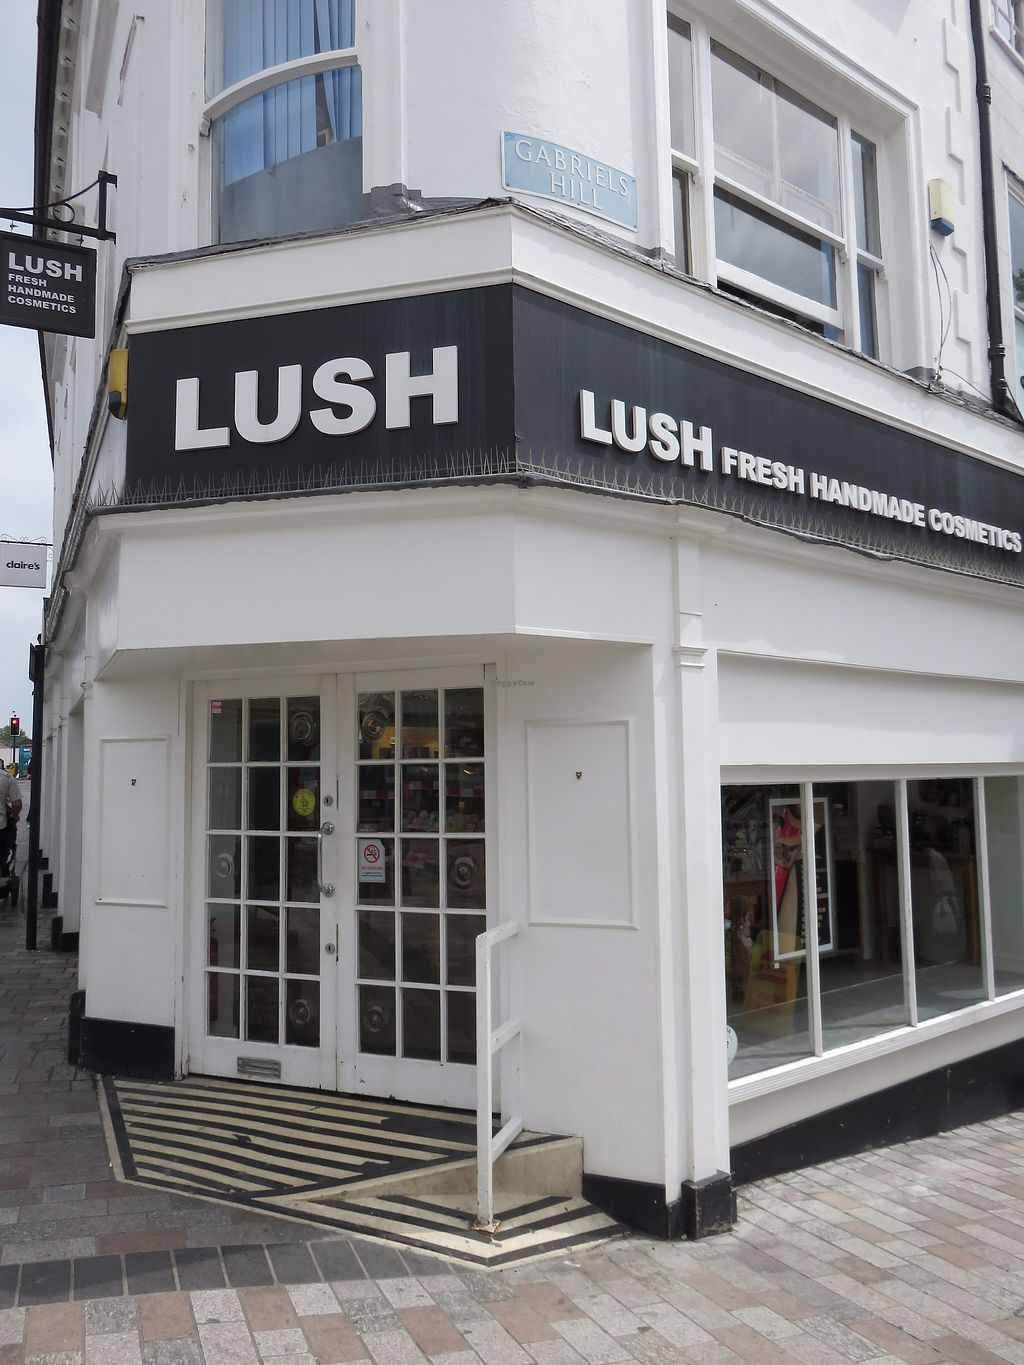 """Photo of Lush  by <a href=""""/members/profile/TrudiBruges"""">TrudiBruges</a> <br/>Lush Maidstone (2015) <br/> November 30, 2017  - <a href='/contact/abuse/image/97183/330786'>Report</a>"""